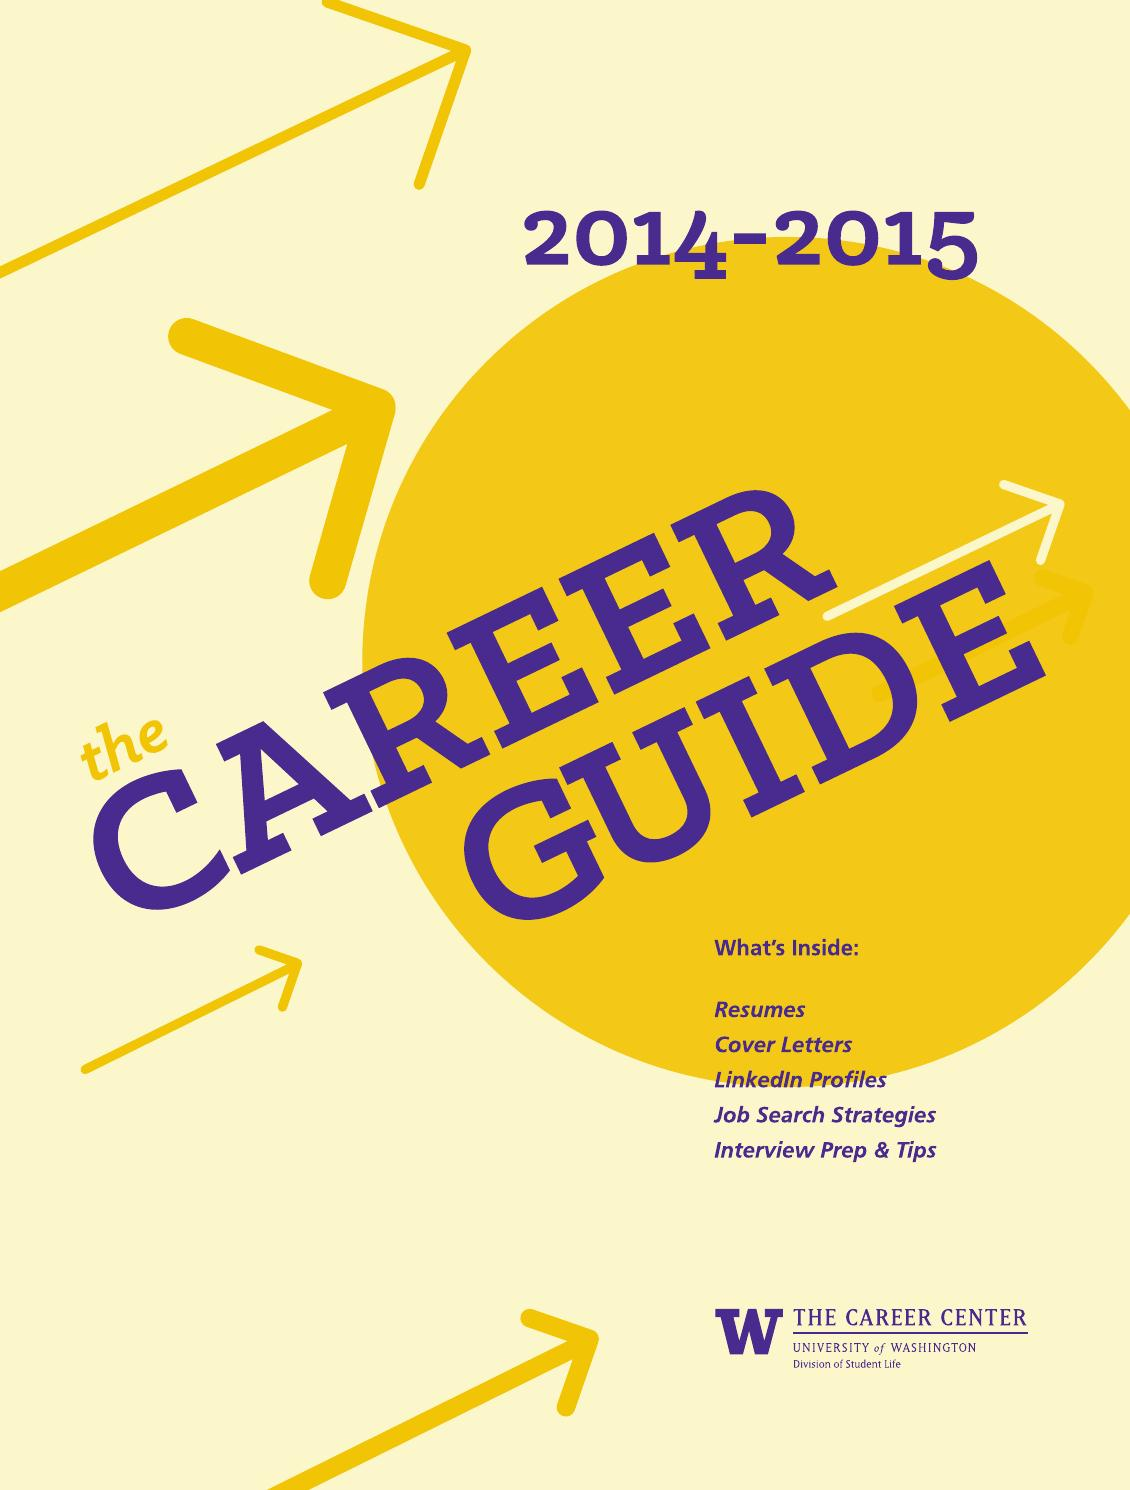 2014 2015 Career Guide By The Career Center Of The University Of